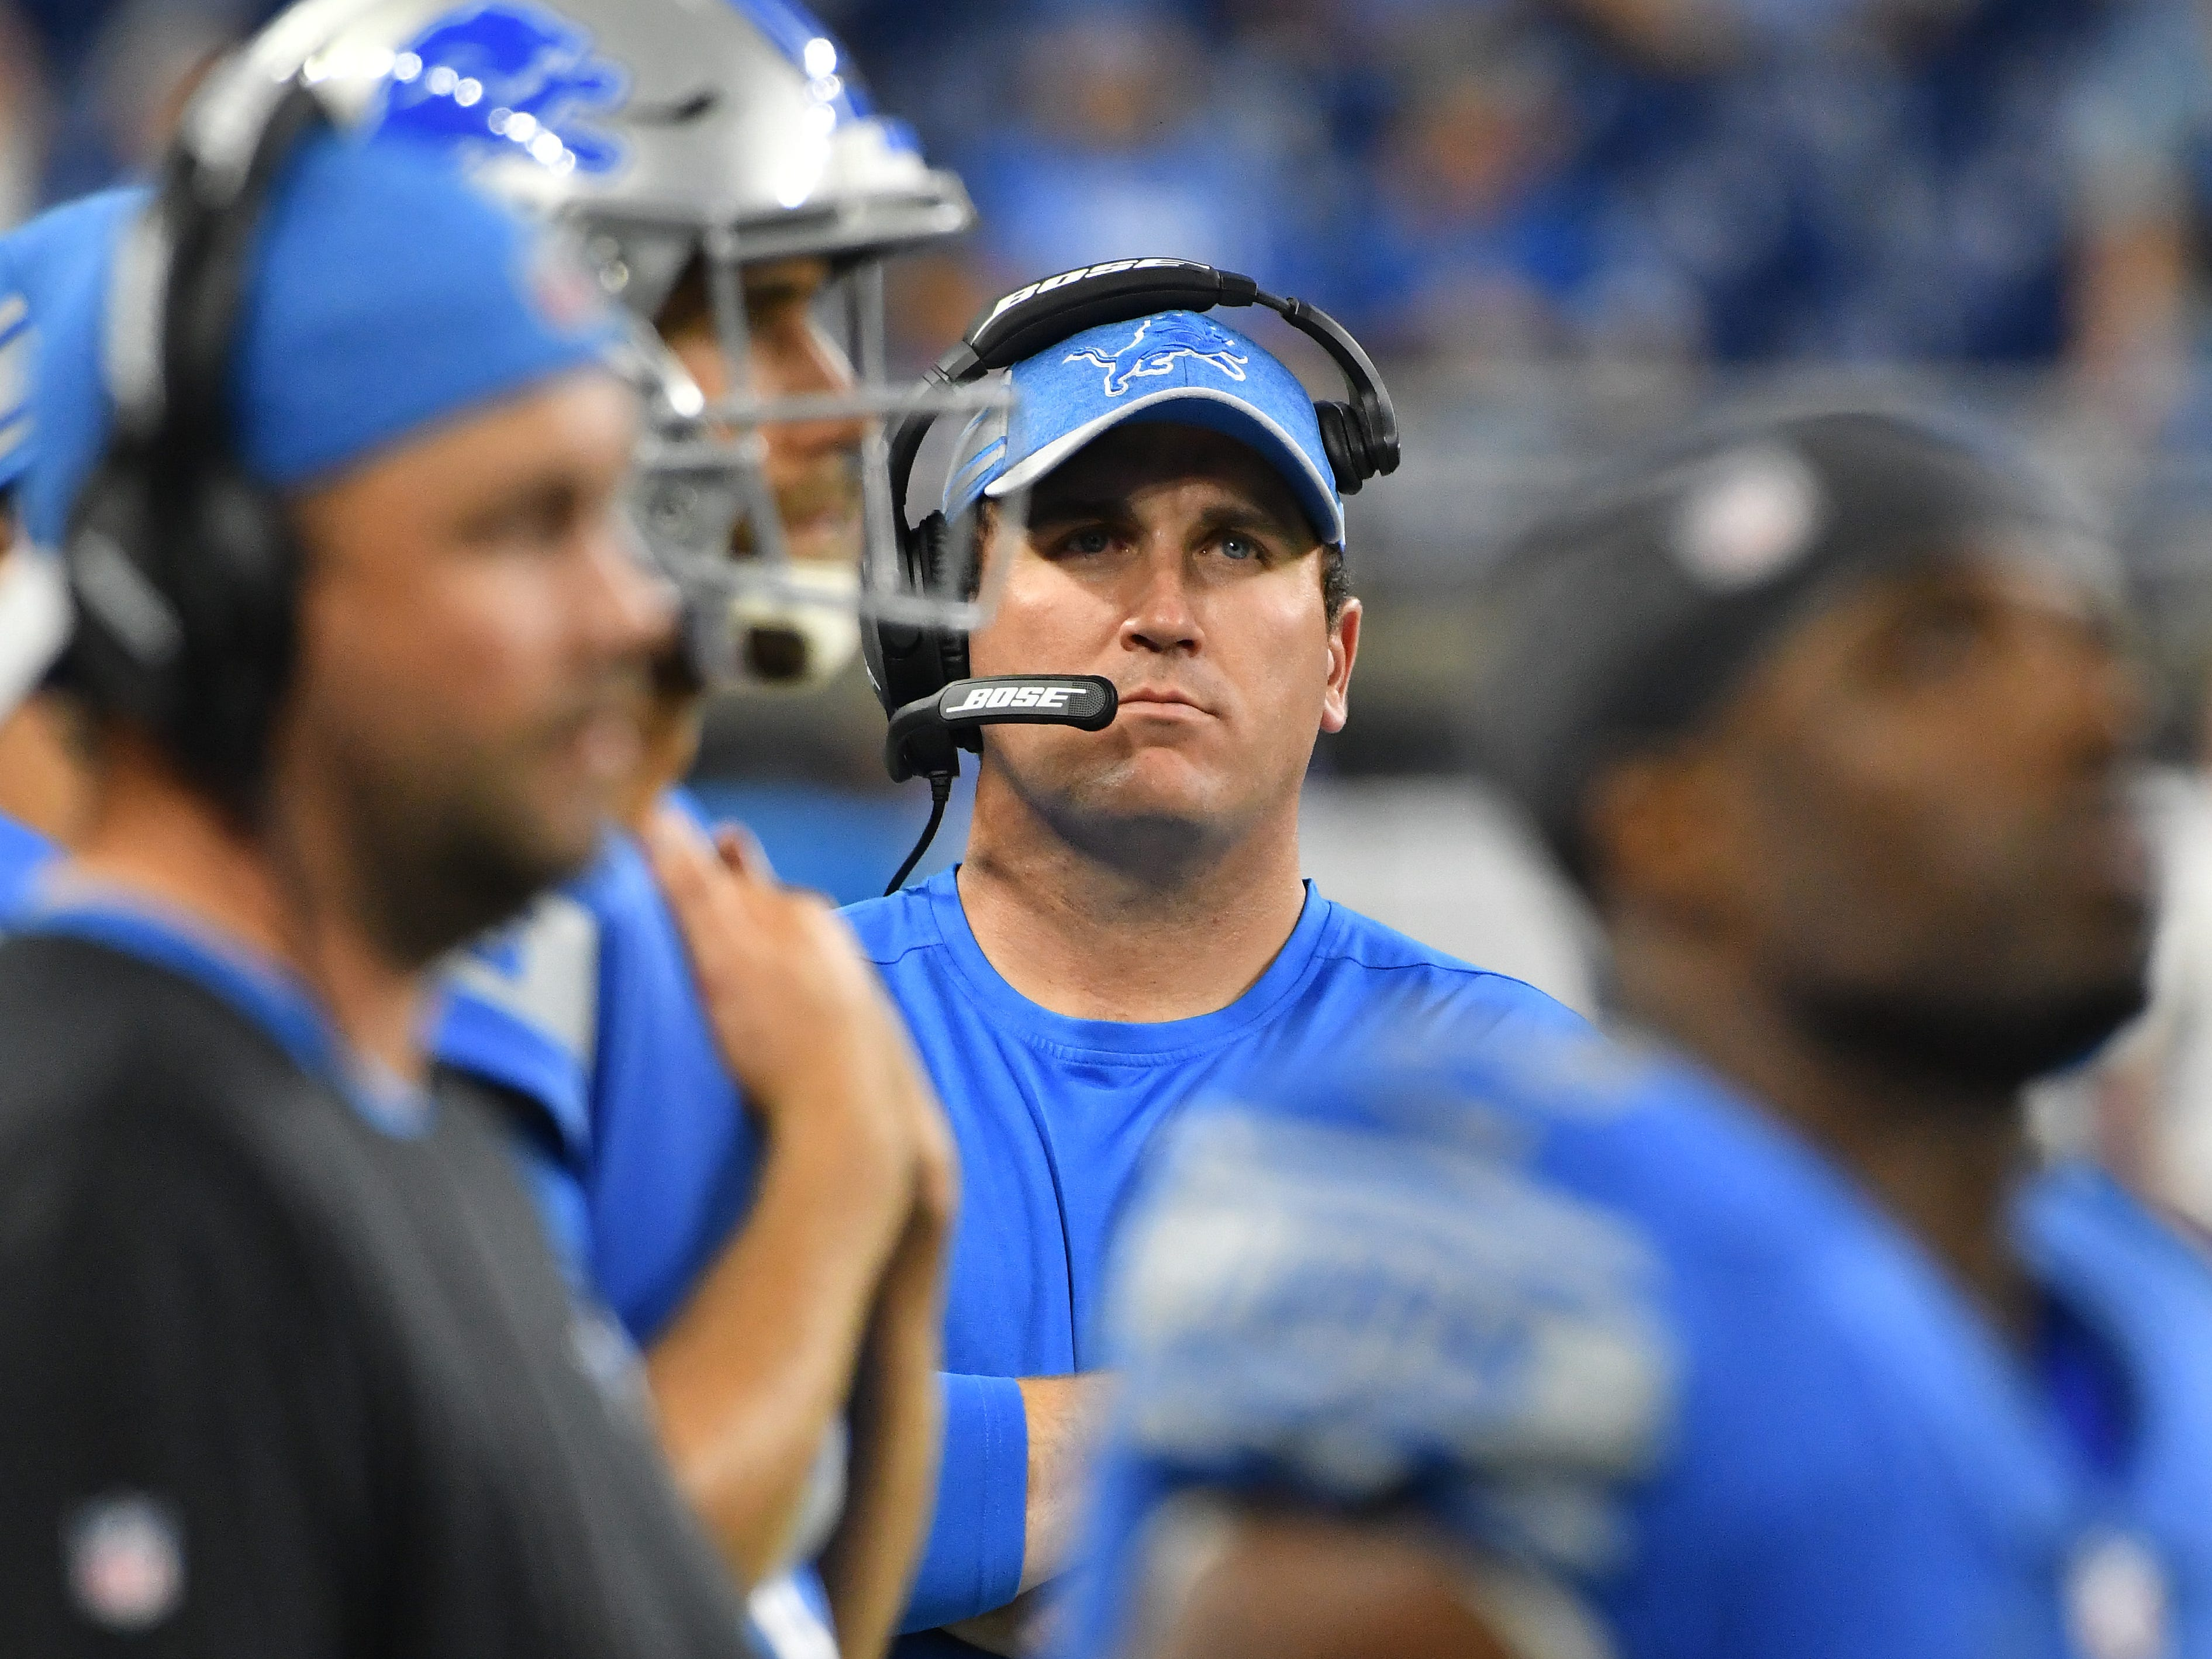 Lions offensive coordinator looks to the video screen as the final seconds of the game tick off with Detroit losing to the New York Jets 48-17.